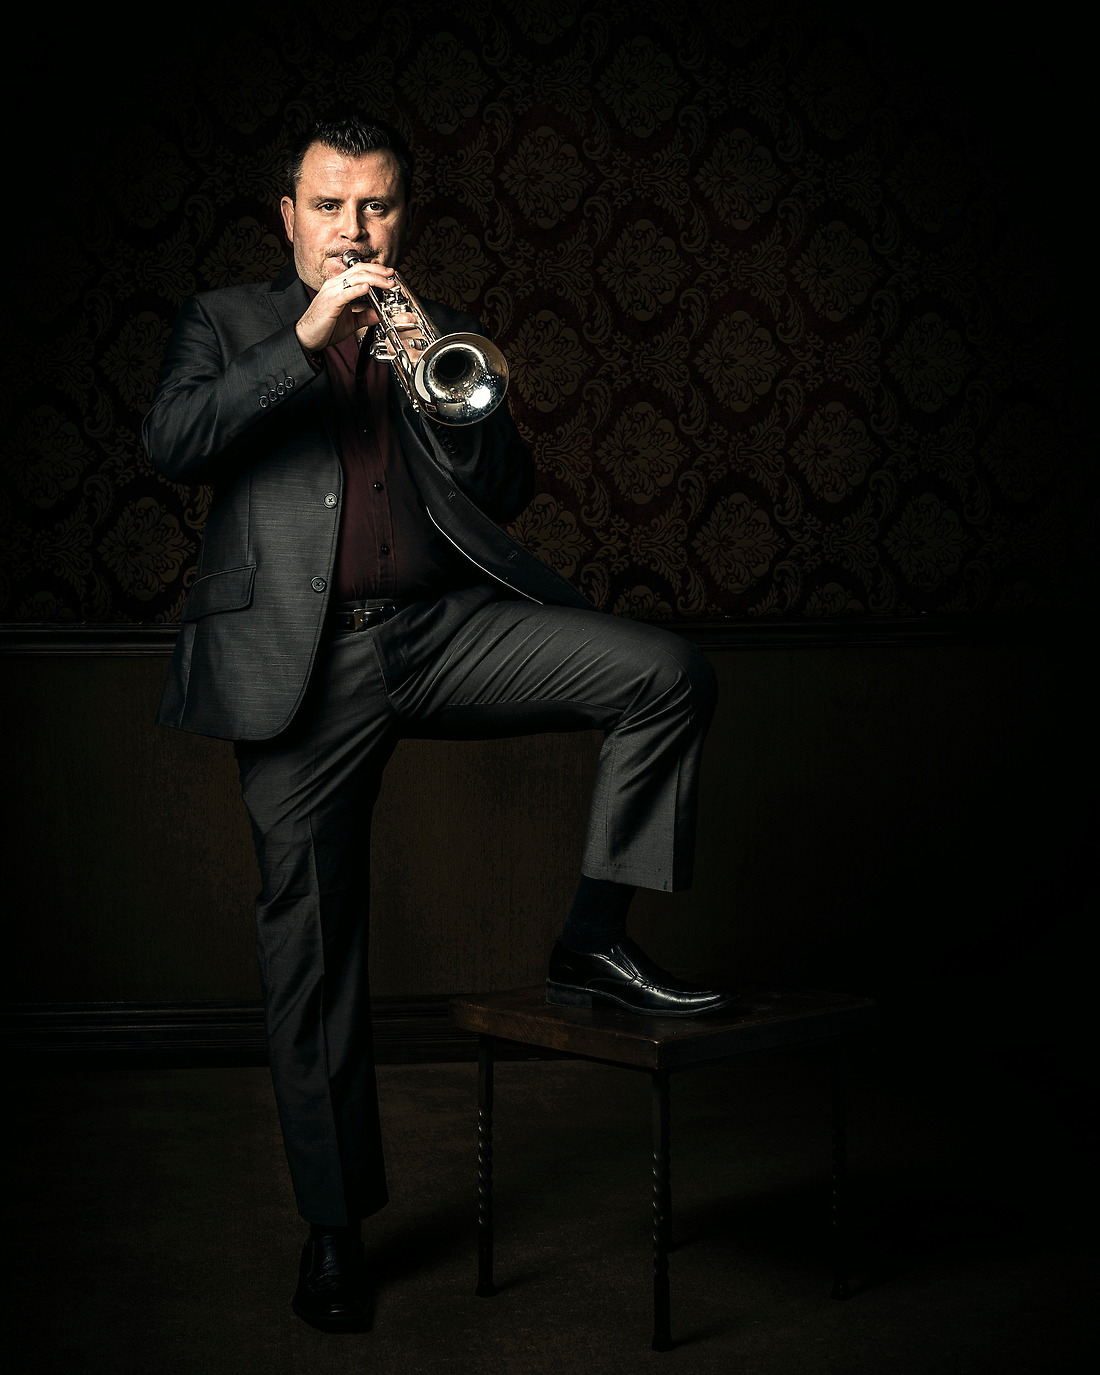 Jose Sibaja Boston Brass and International Soloist / Artist. — © Jeremy Lock/